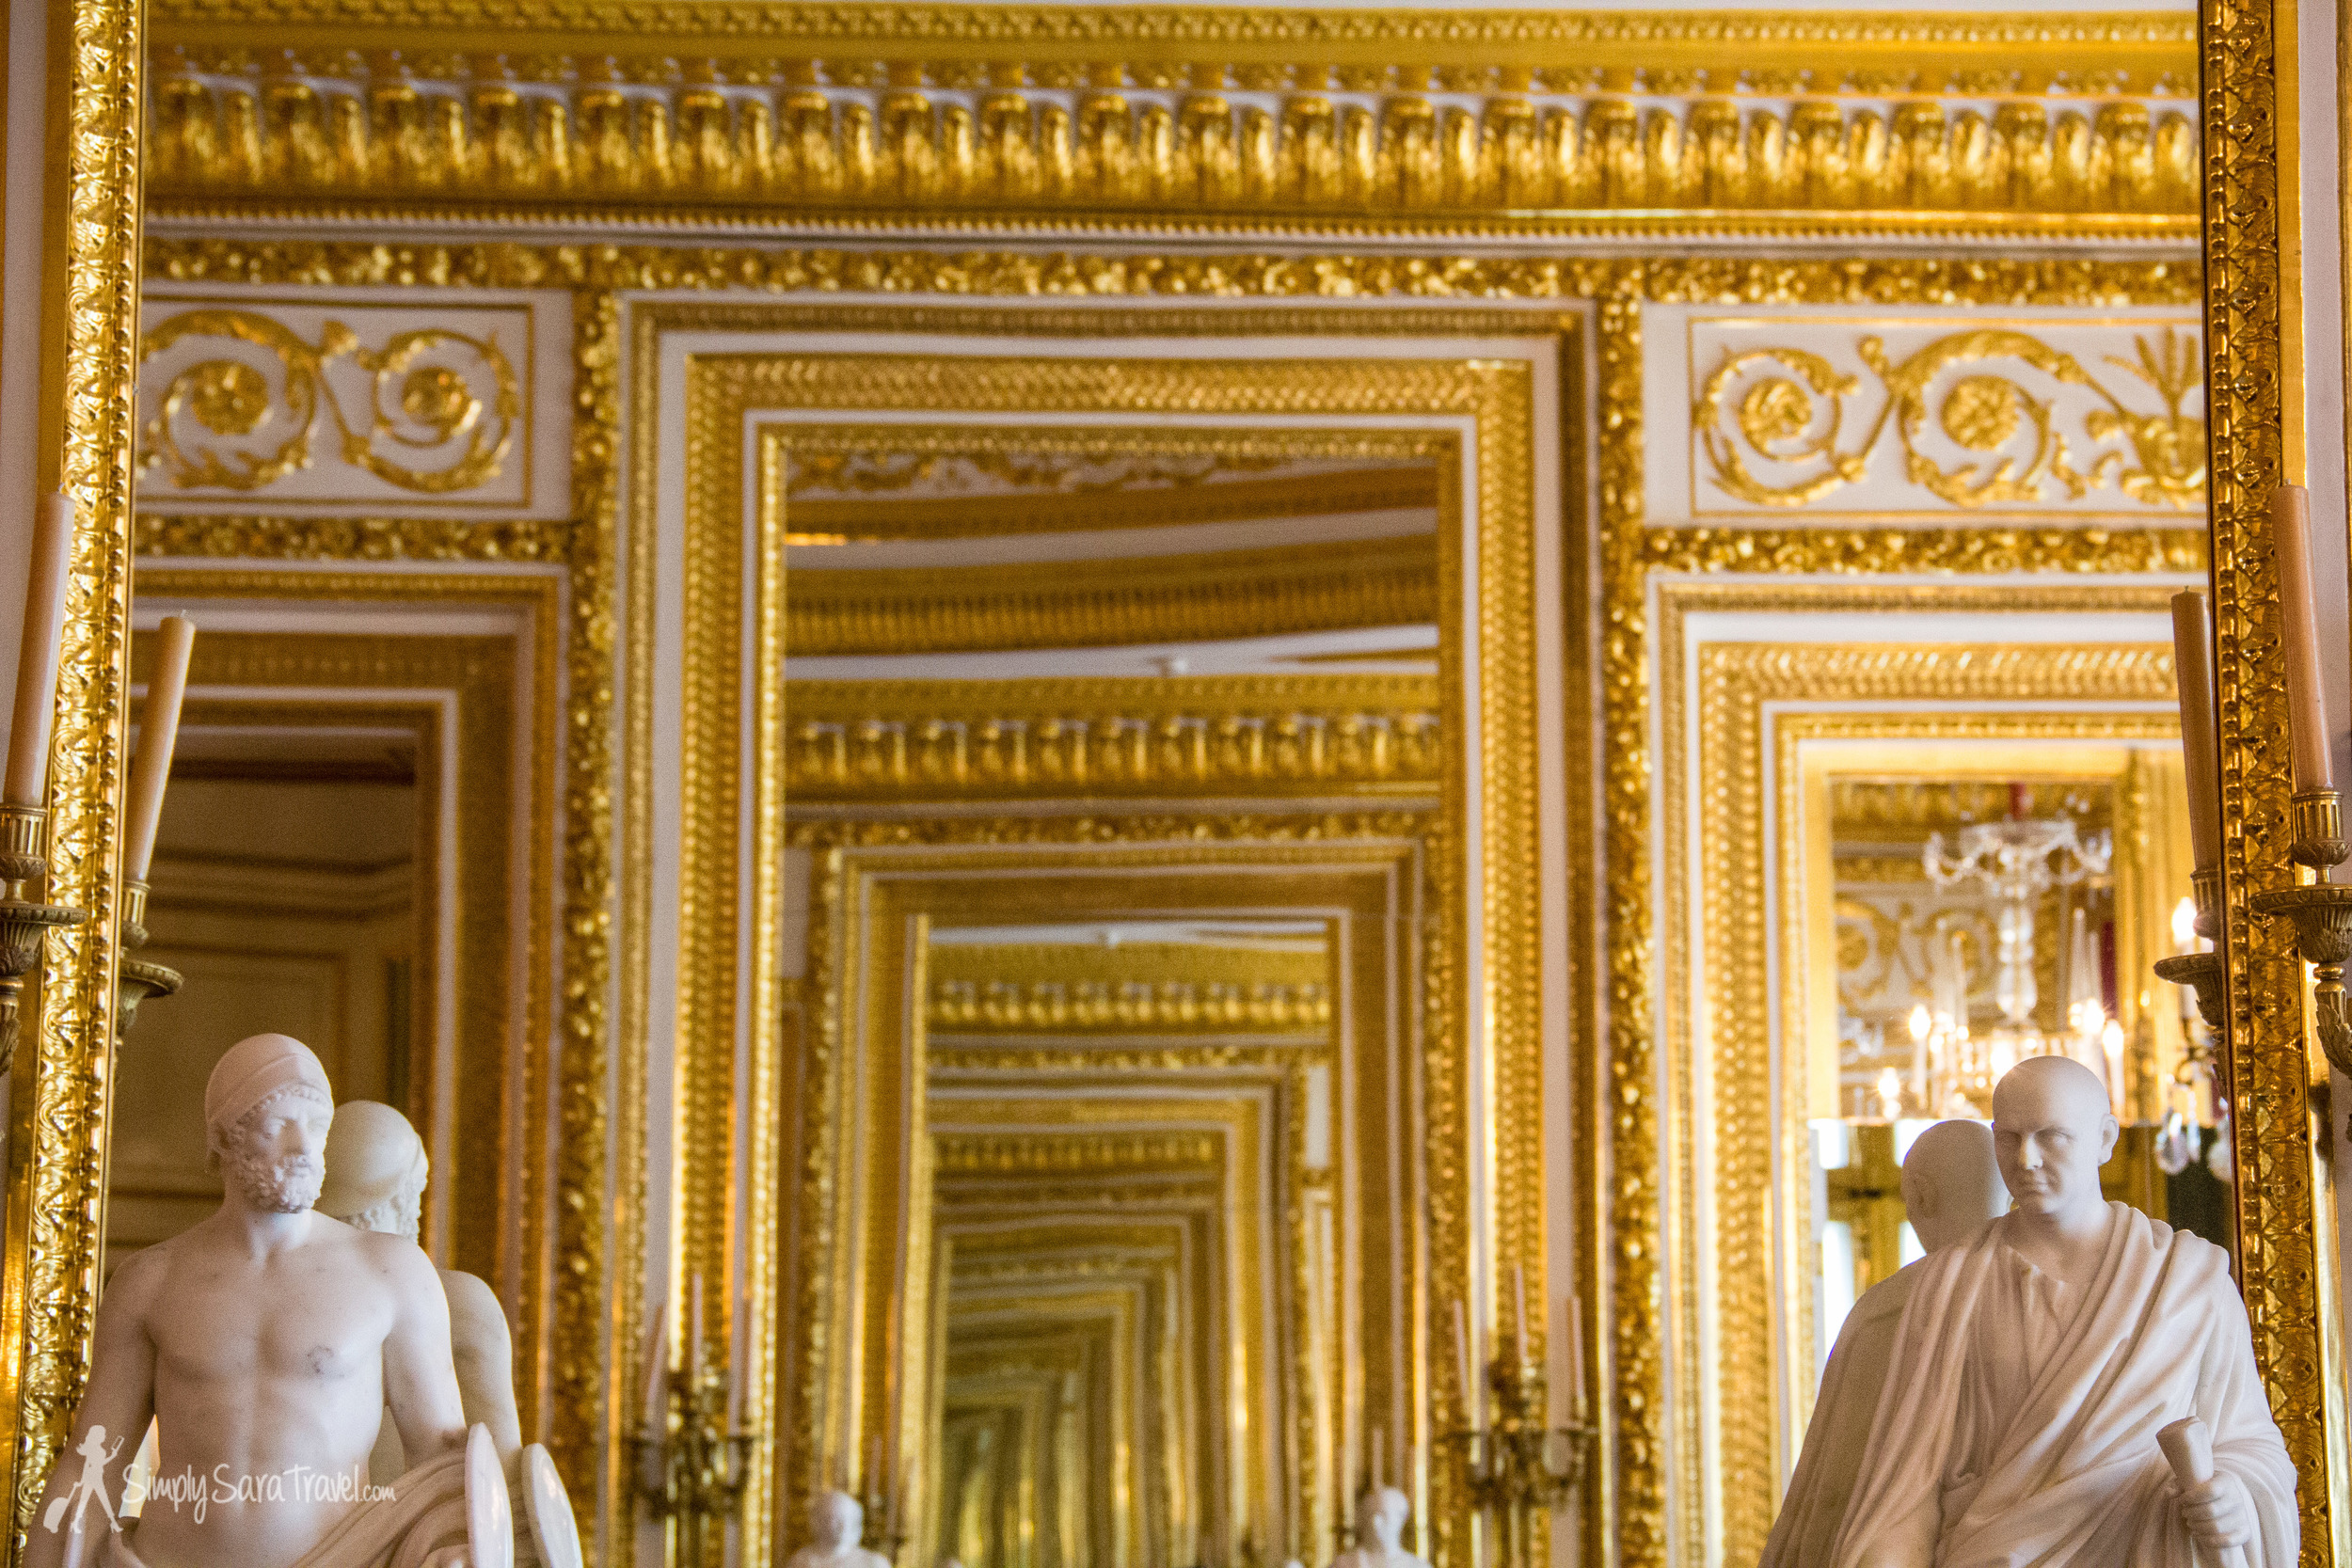 Gold mirrors and statues in the Royal Castle, Warsaw, Poland